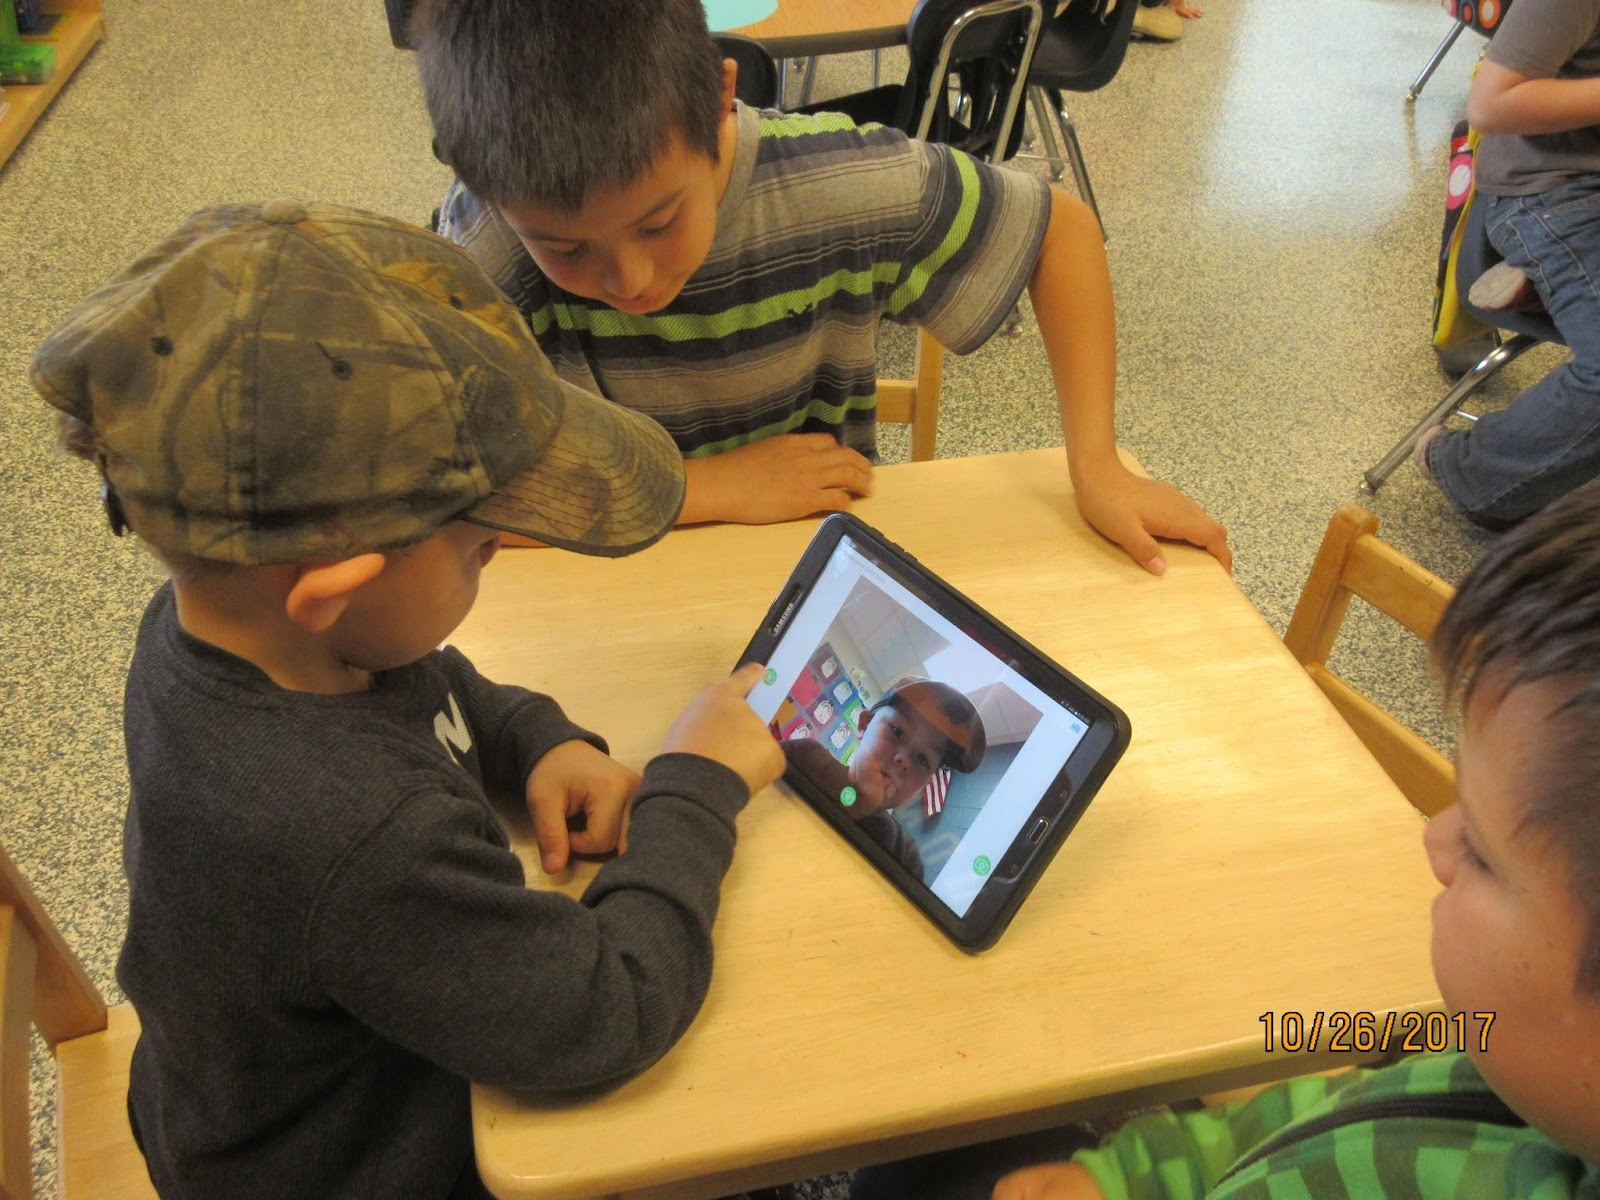 Students looking at tablet